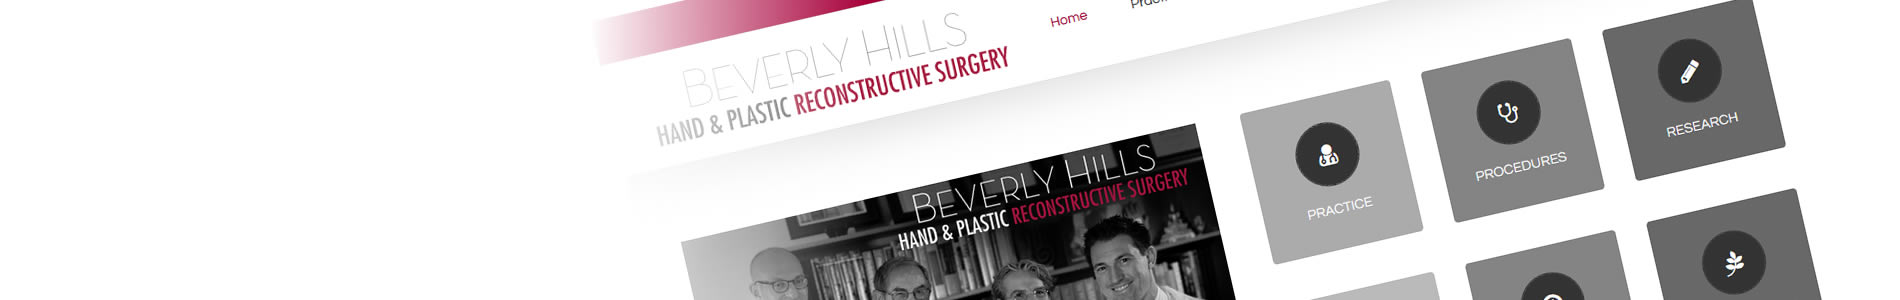 Beverly Hills Hand & Plastic Surgery